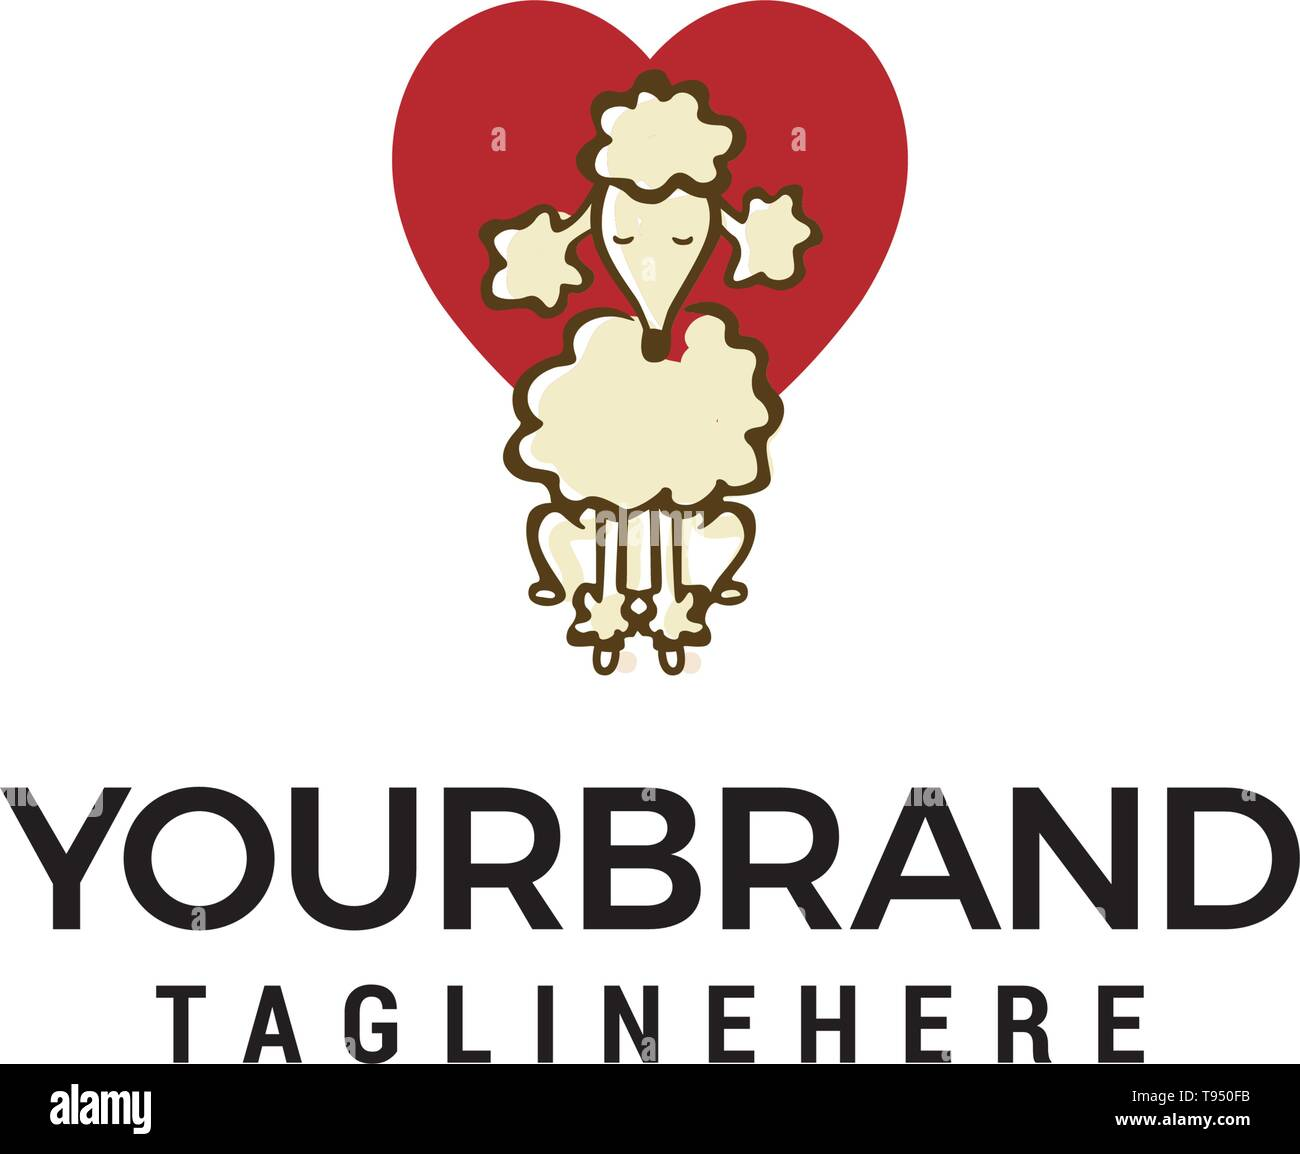 dog heart logo design concept template vector - Stock Image